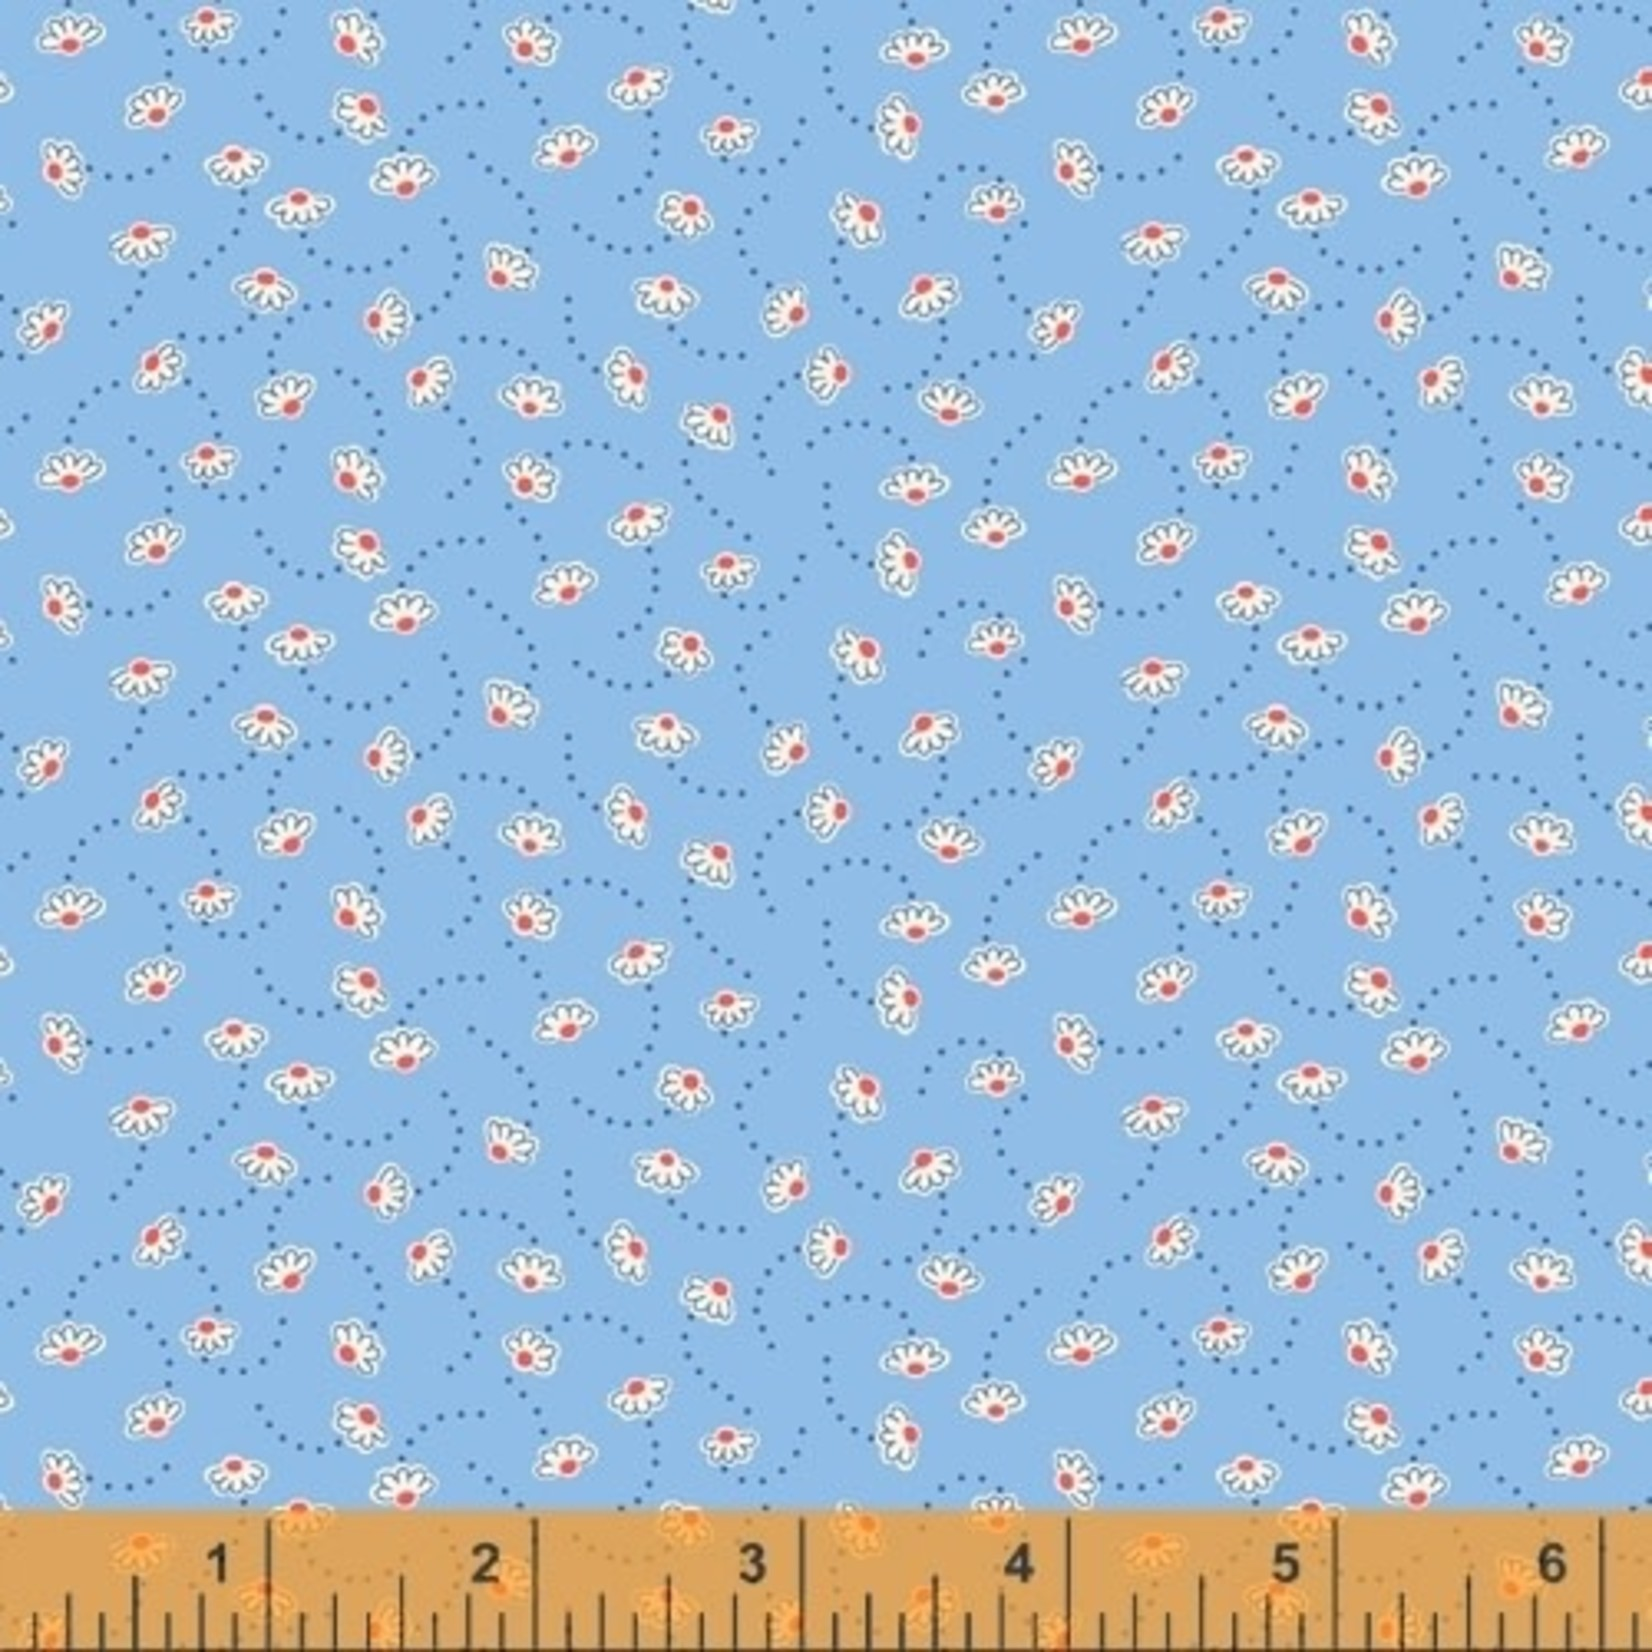 WINDHAM FABRICS STORYBOOK, BOUNCING FLOWERS, BLUE (51984-2) PER CM OR $20/M